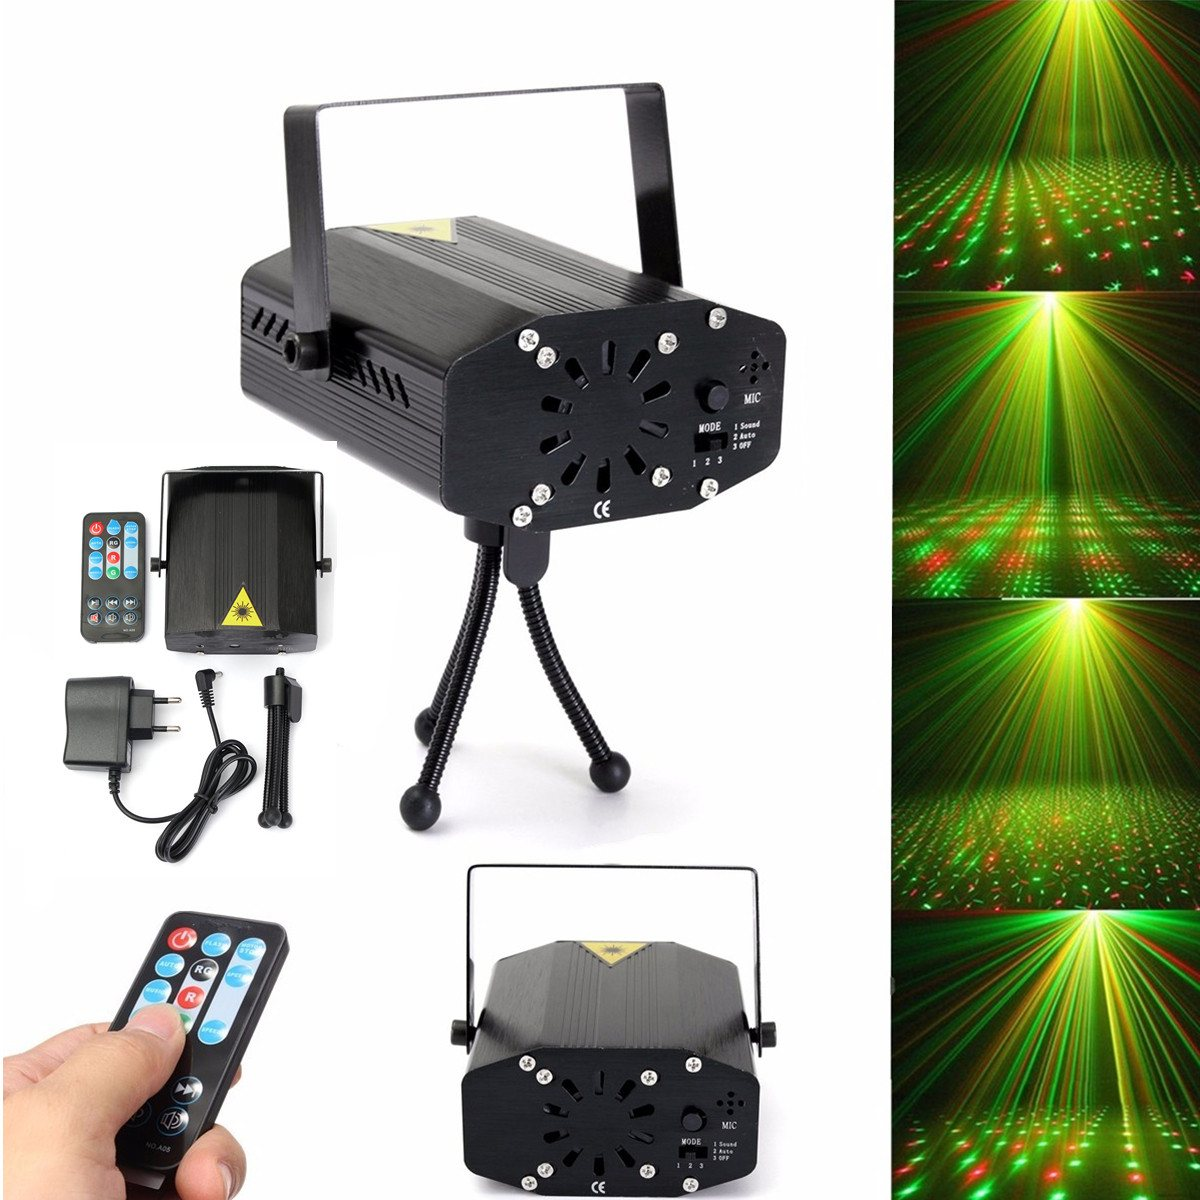 LED Star Laser Projector Stage Light Remote Control Night Lamp Tripod DJ Club Pub Bar Disco Wedding Party Show Lighting 7colors led night light starry sky remote control ocean wave projector with mini music novelty baby lamp led night lamp for kids